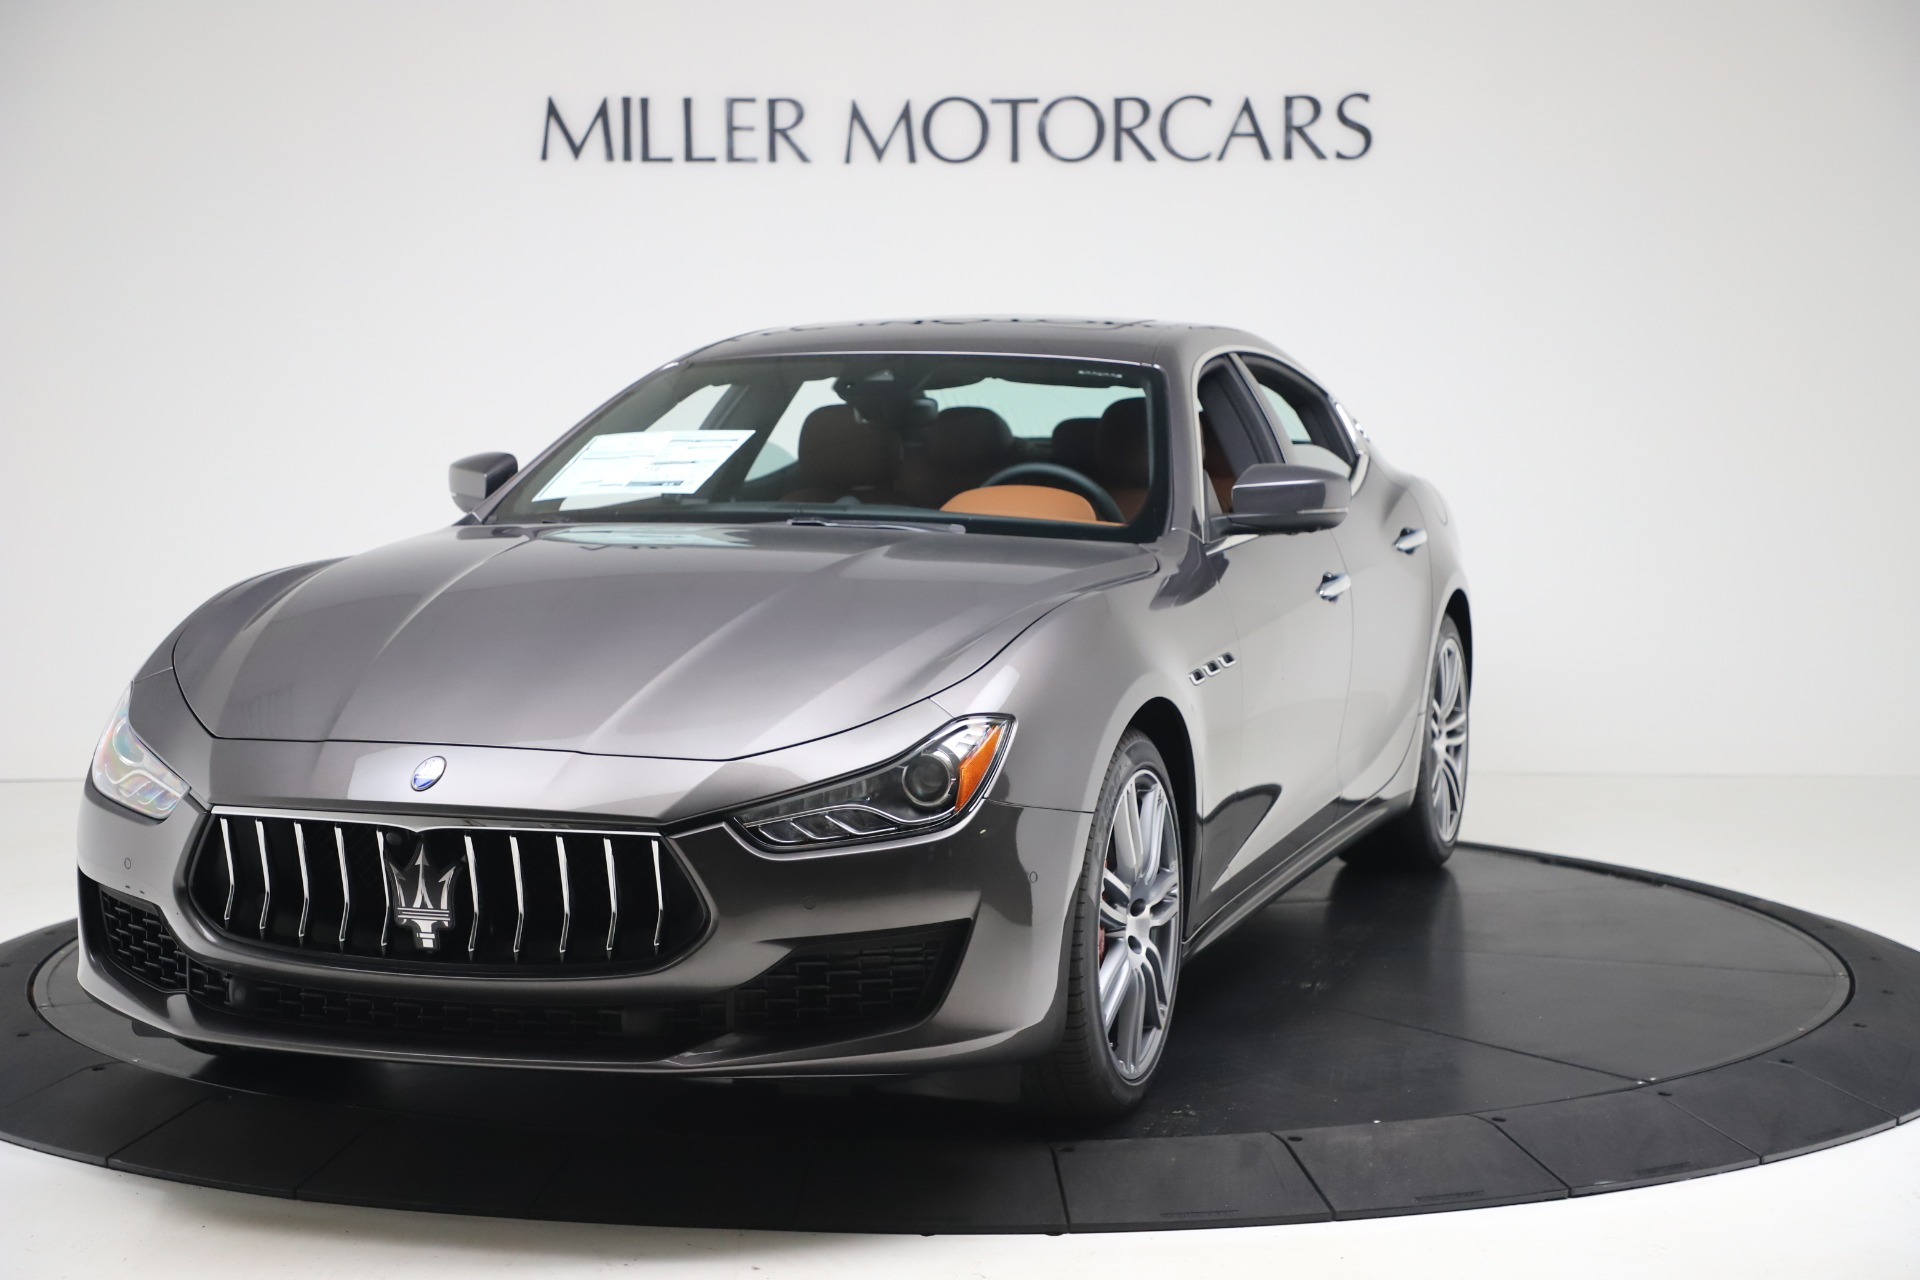 New 2020 Maserati Ghibli S Q4 for sale $87,285 at Pagani of Greenwich in Greenwich CT 06830 1